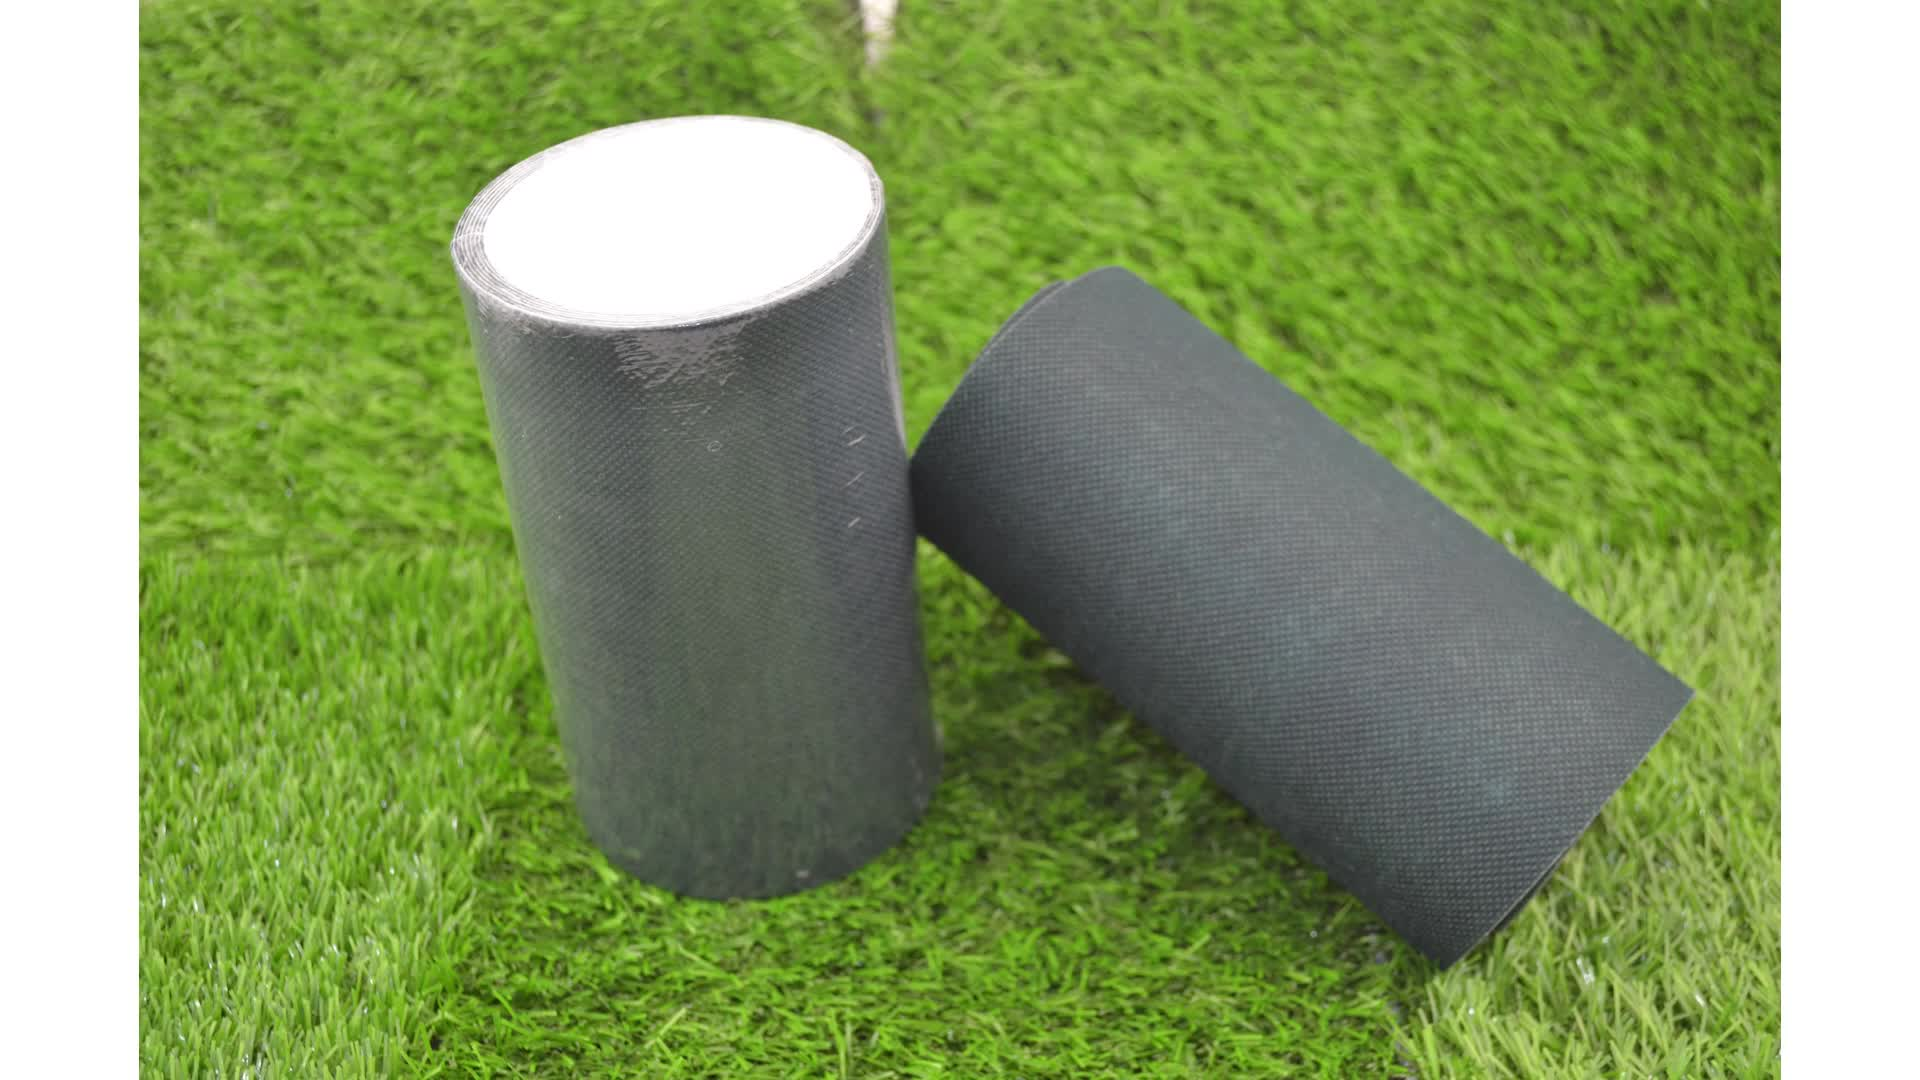 125g cloth + 500g glue artificial grass joining tape for landscapes